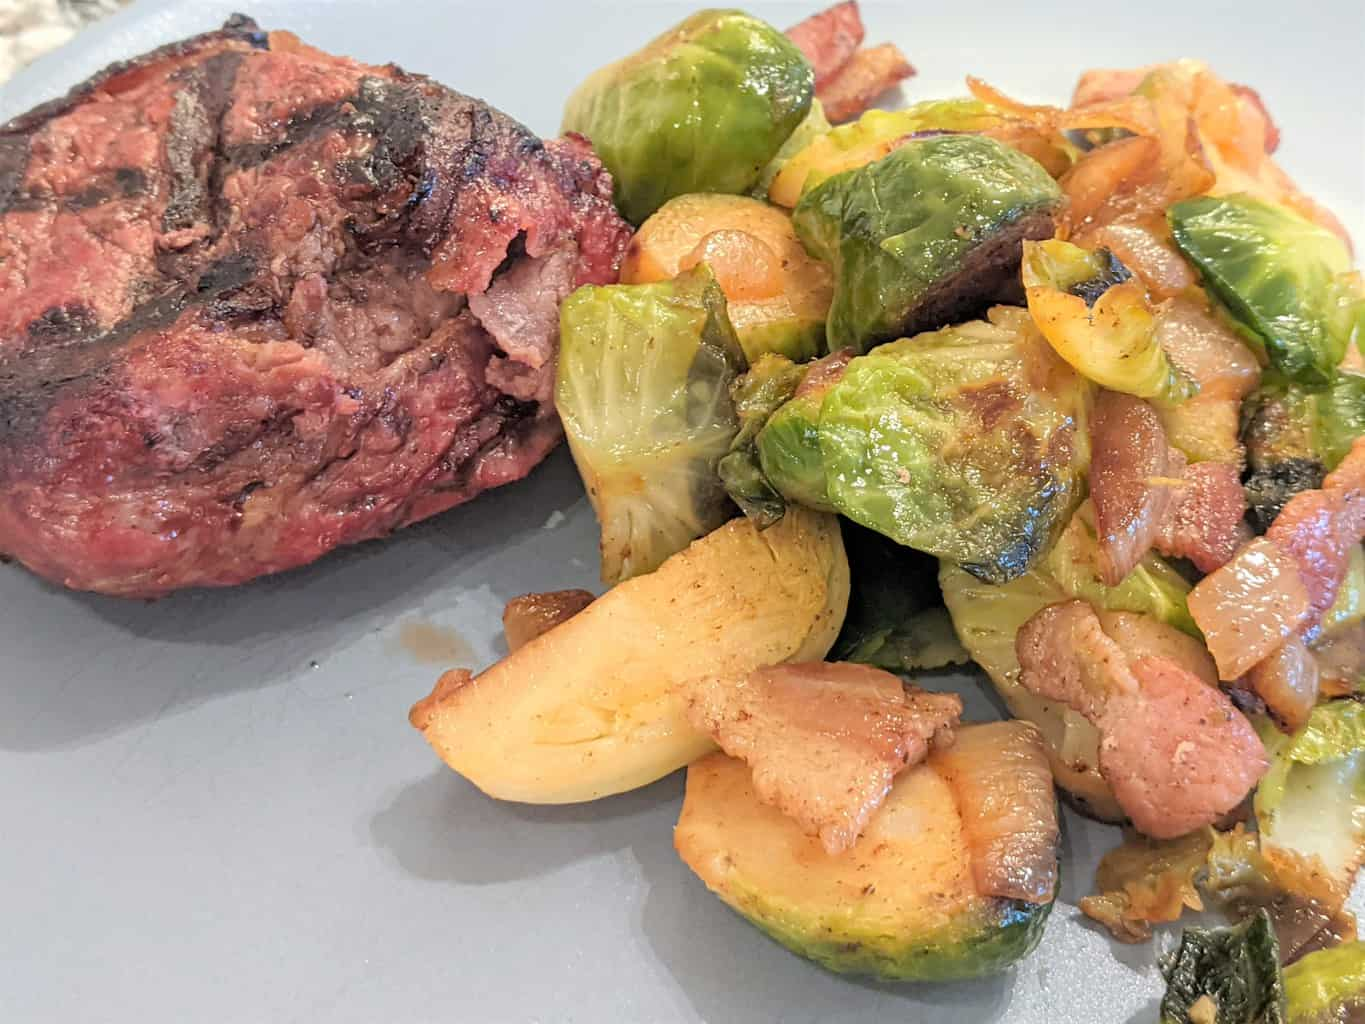 steak with a side of brussel sprouts